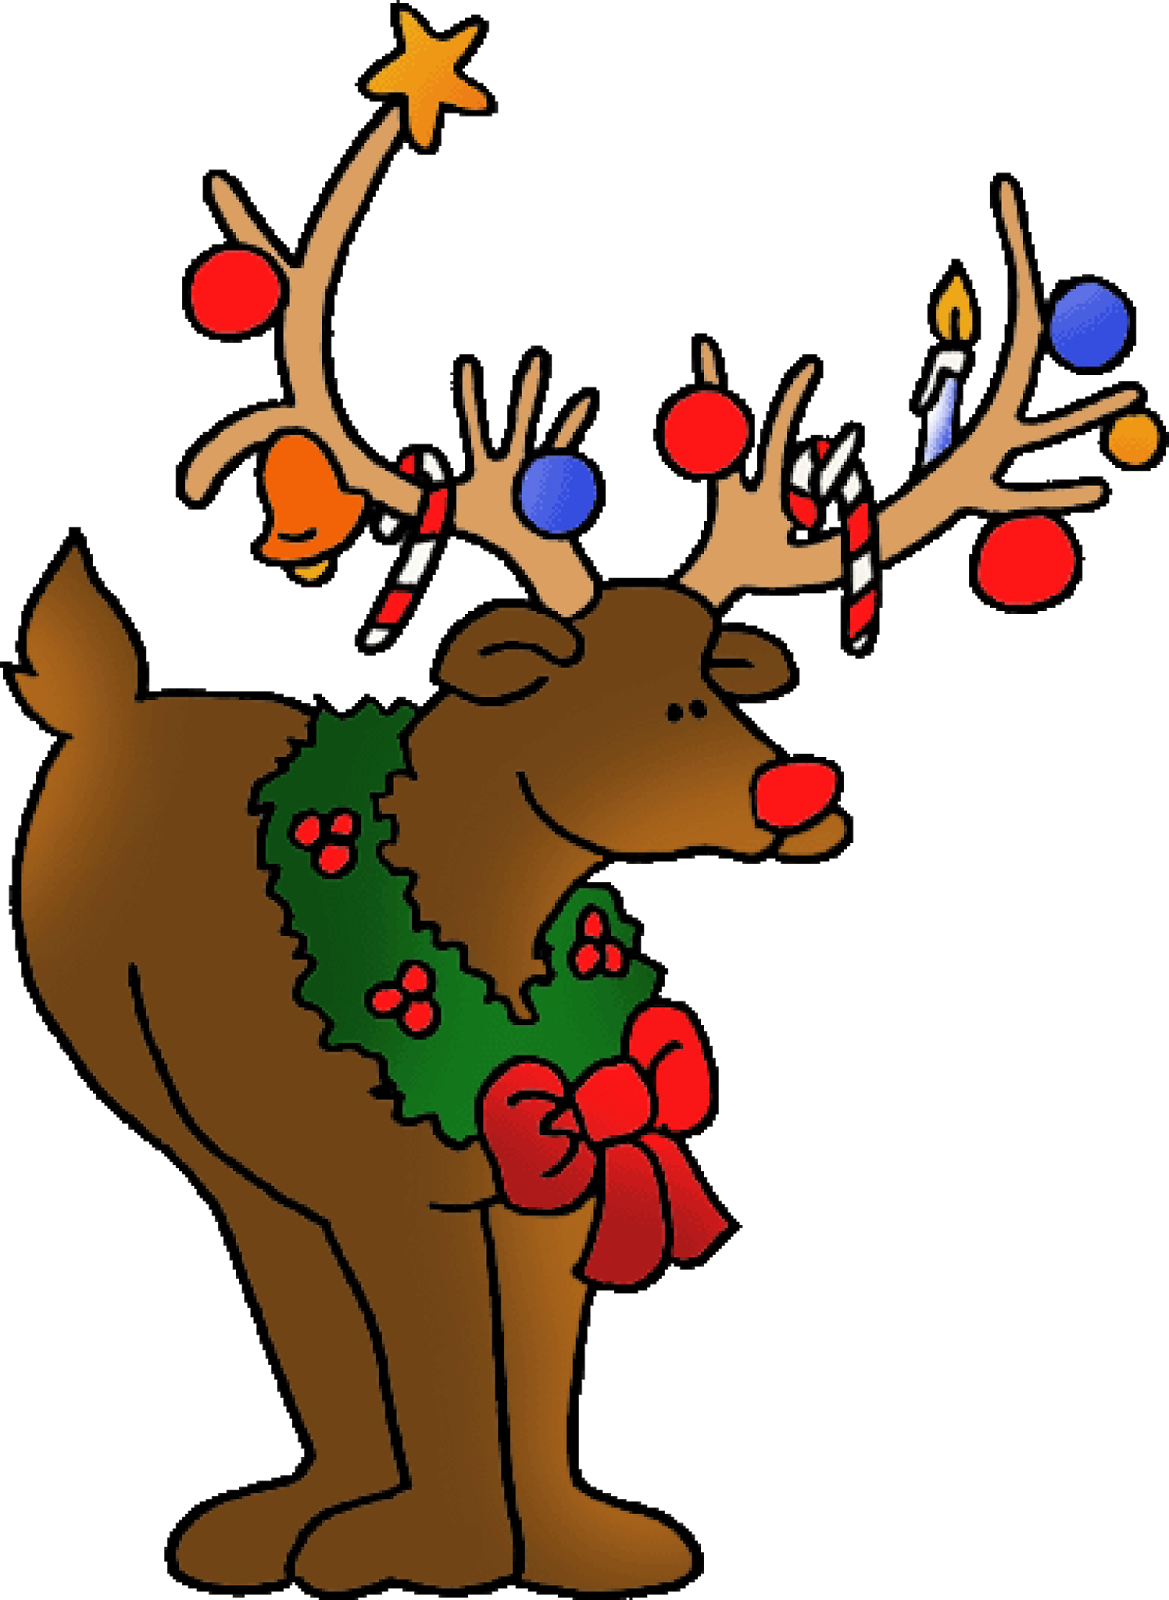 Merry Christmas Deer Clipart High Definition For Hd Wallpapers